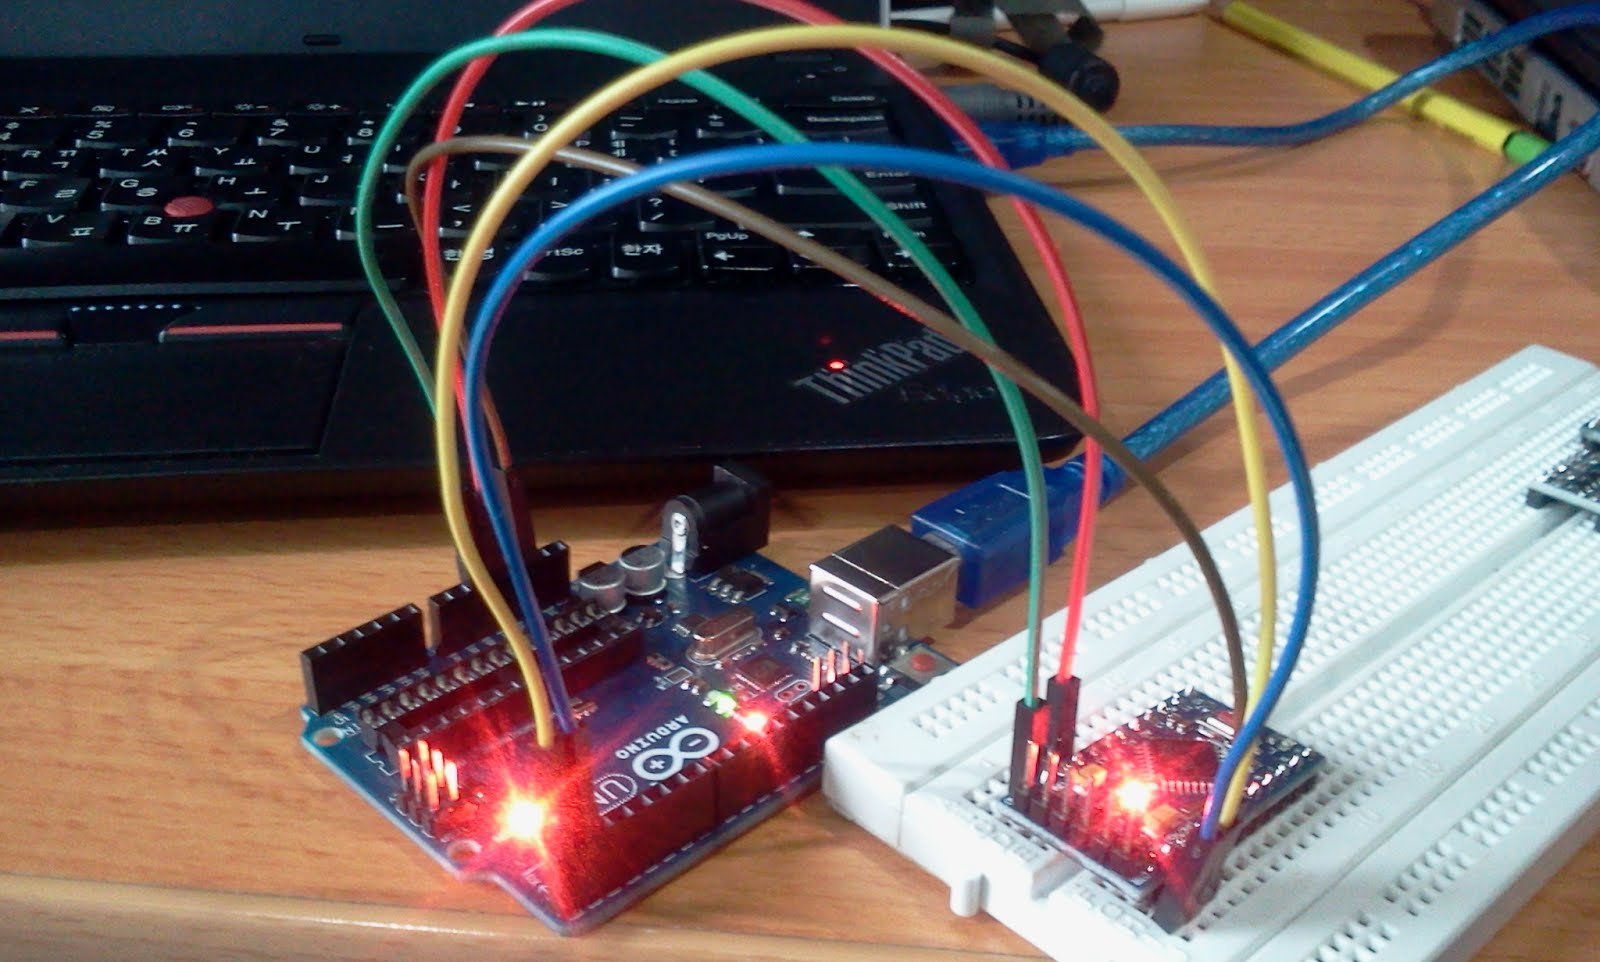 Spi on raspberry pi